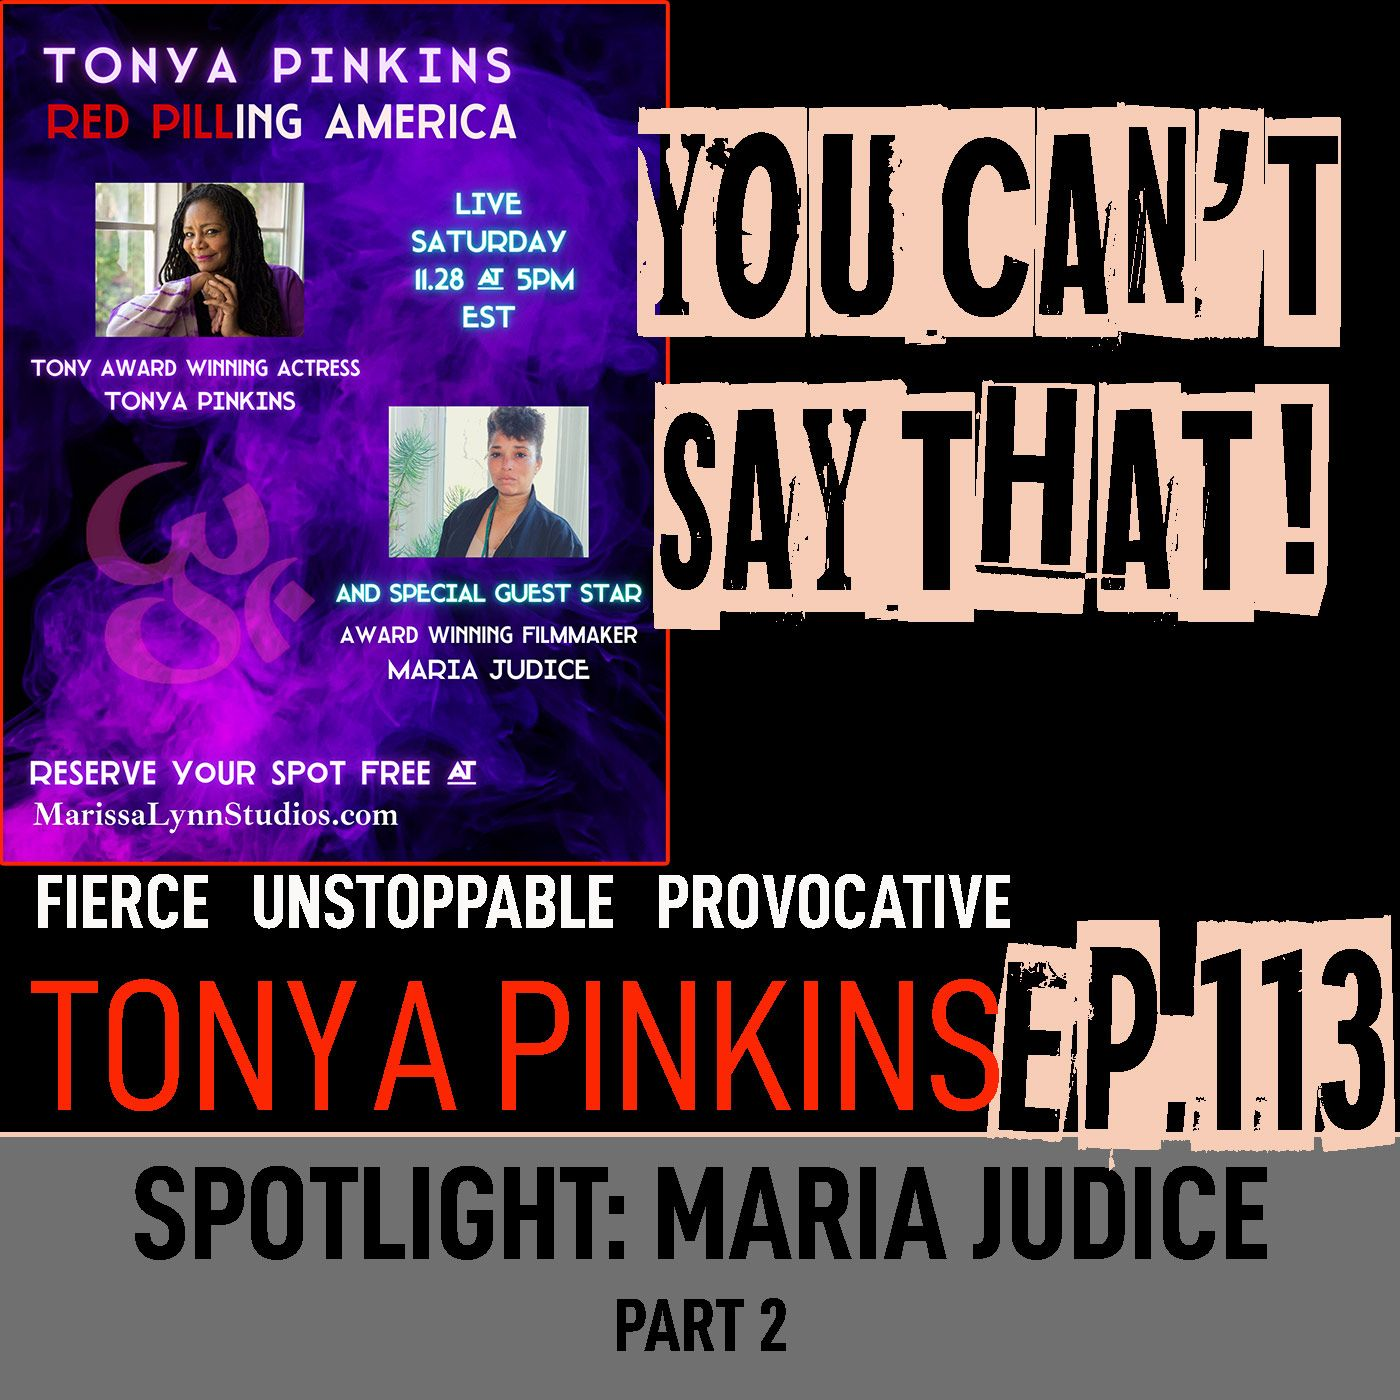 Ep113 - SPOTLIGHT: Red Pilling America with with Maria Judice (Part 2)